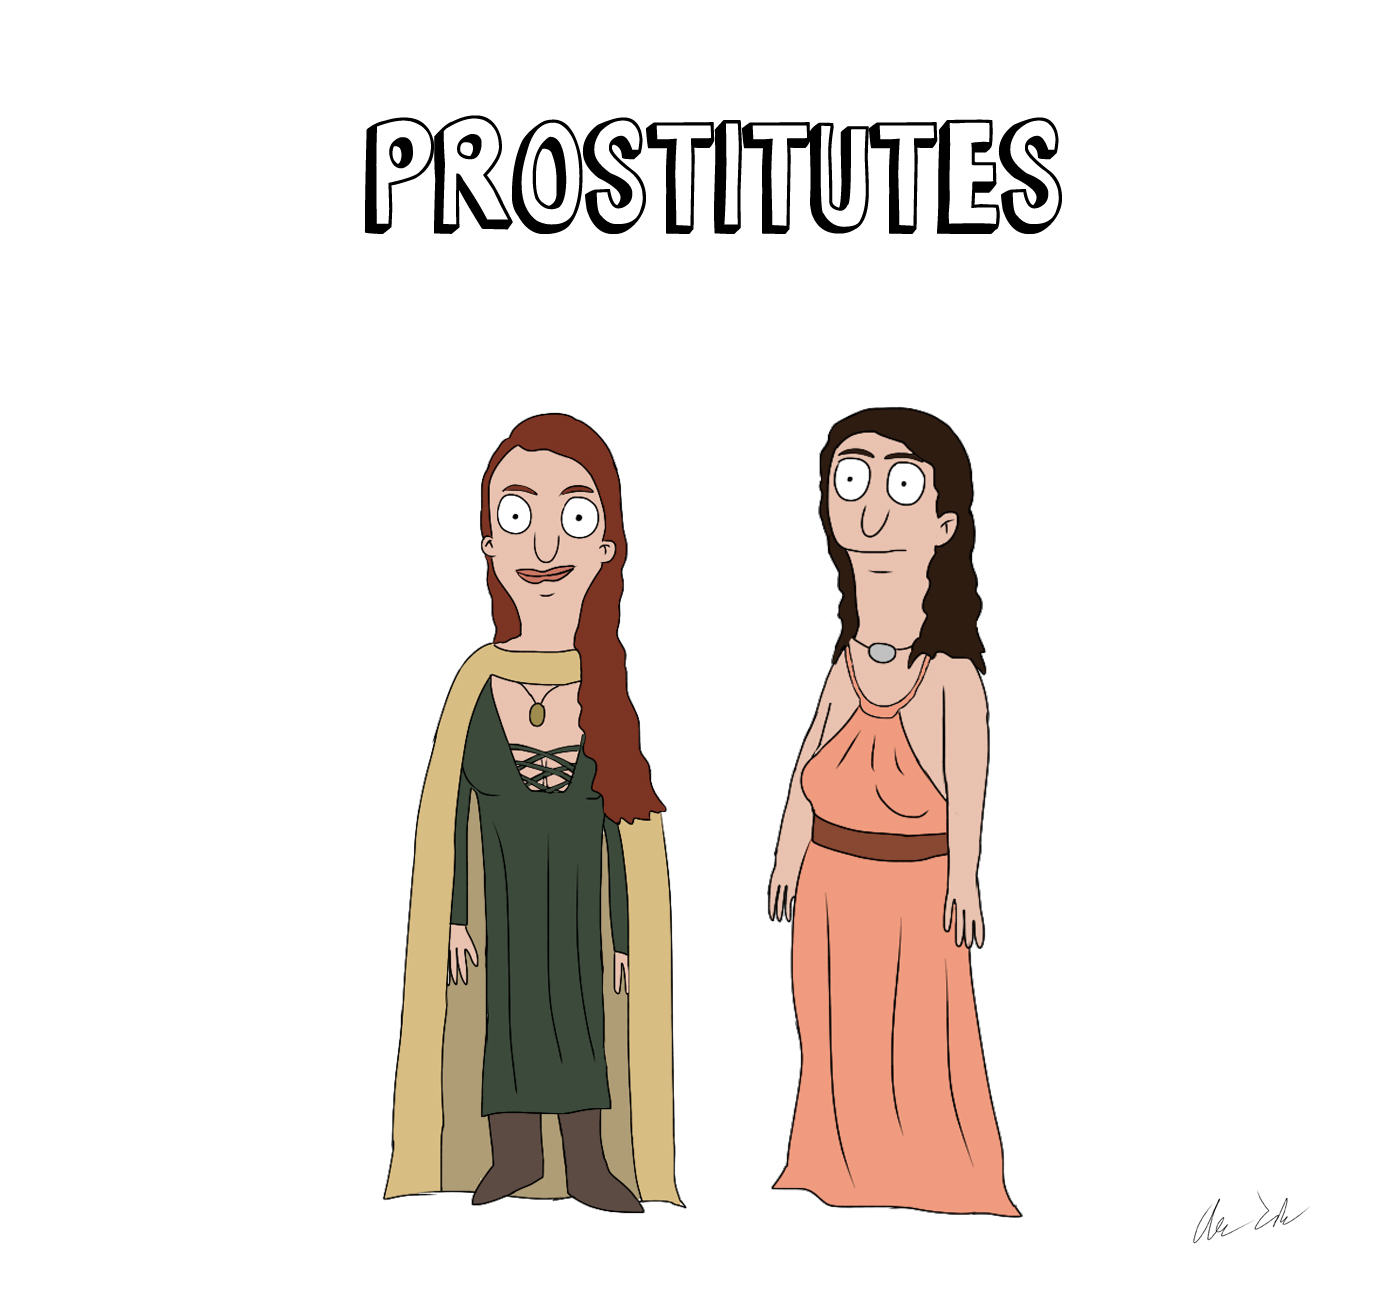 Someone Has Drawn Game Of Thrones Characters In The Style Of Bobs Burgers UNILAD house52